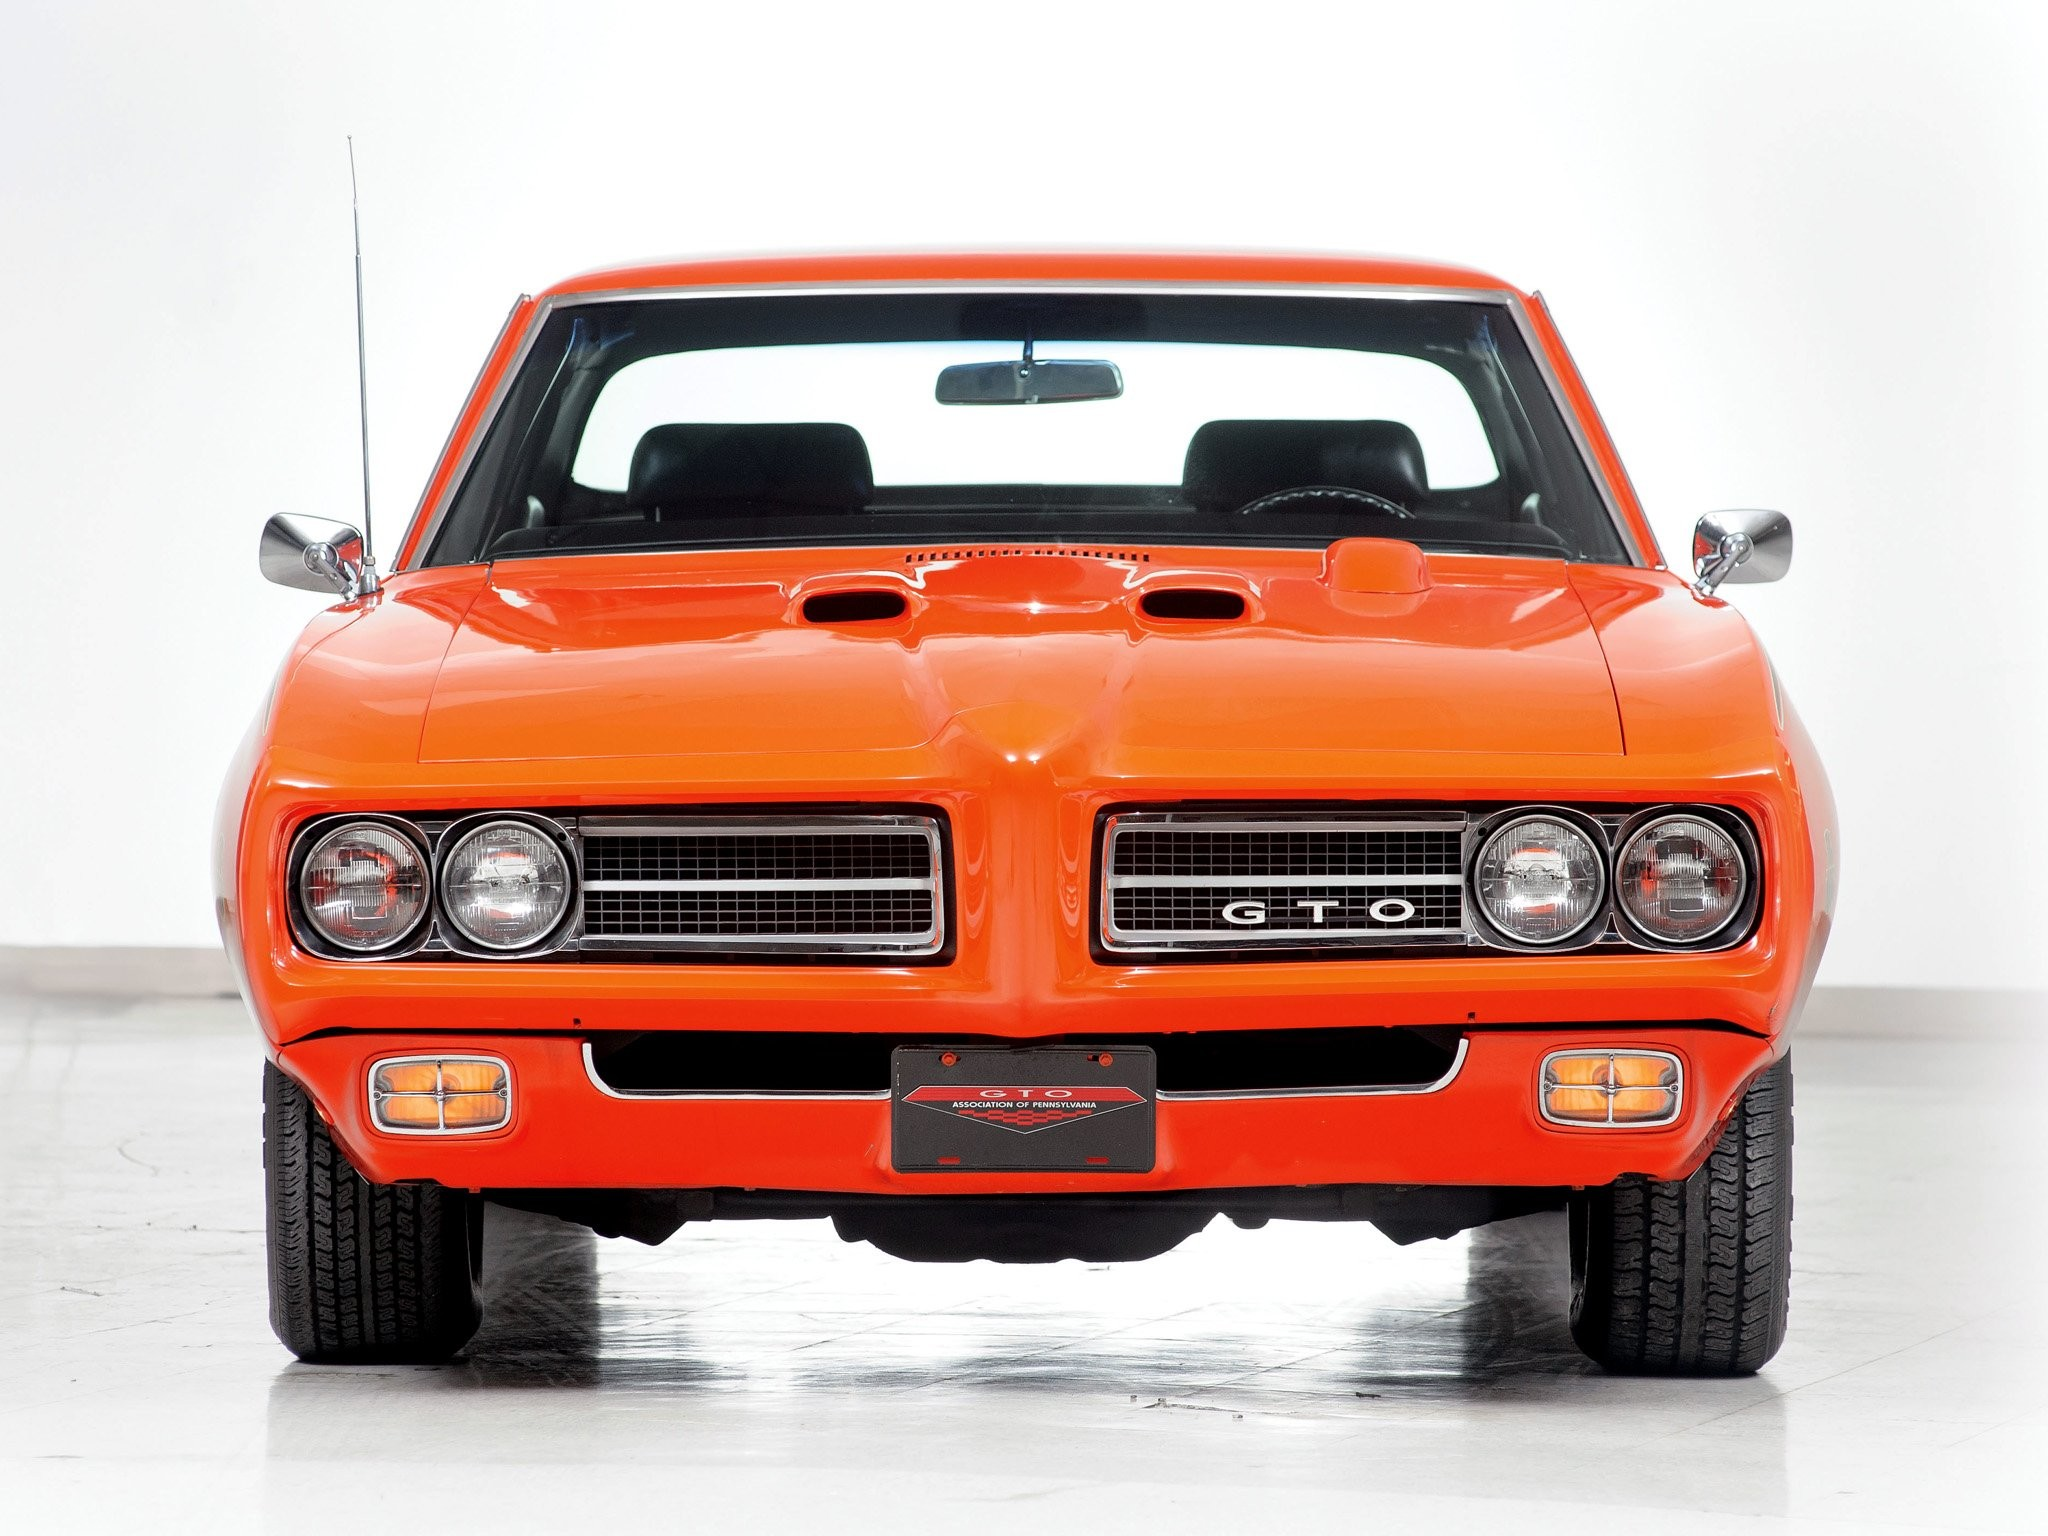 2048x1536 1969 Pontiac GTO Judge Hardtop Coupe muscle classic hd wallpaper |   | 331953 | WallpaperUP